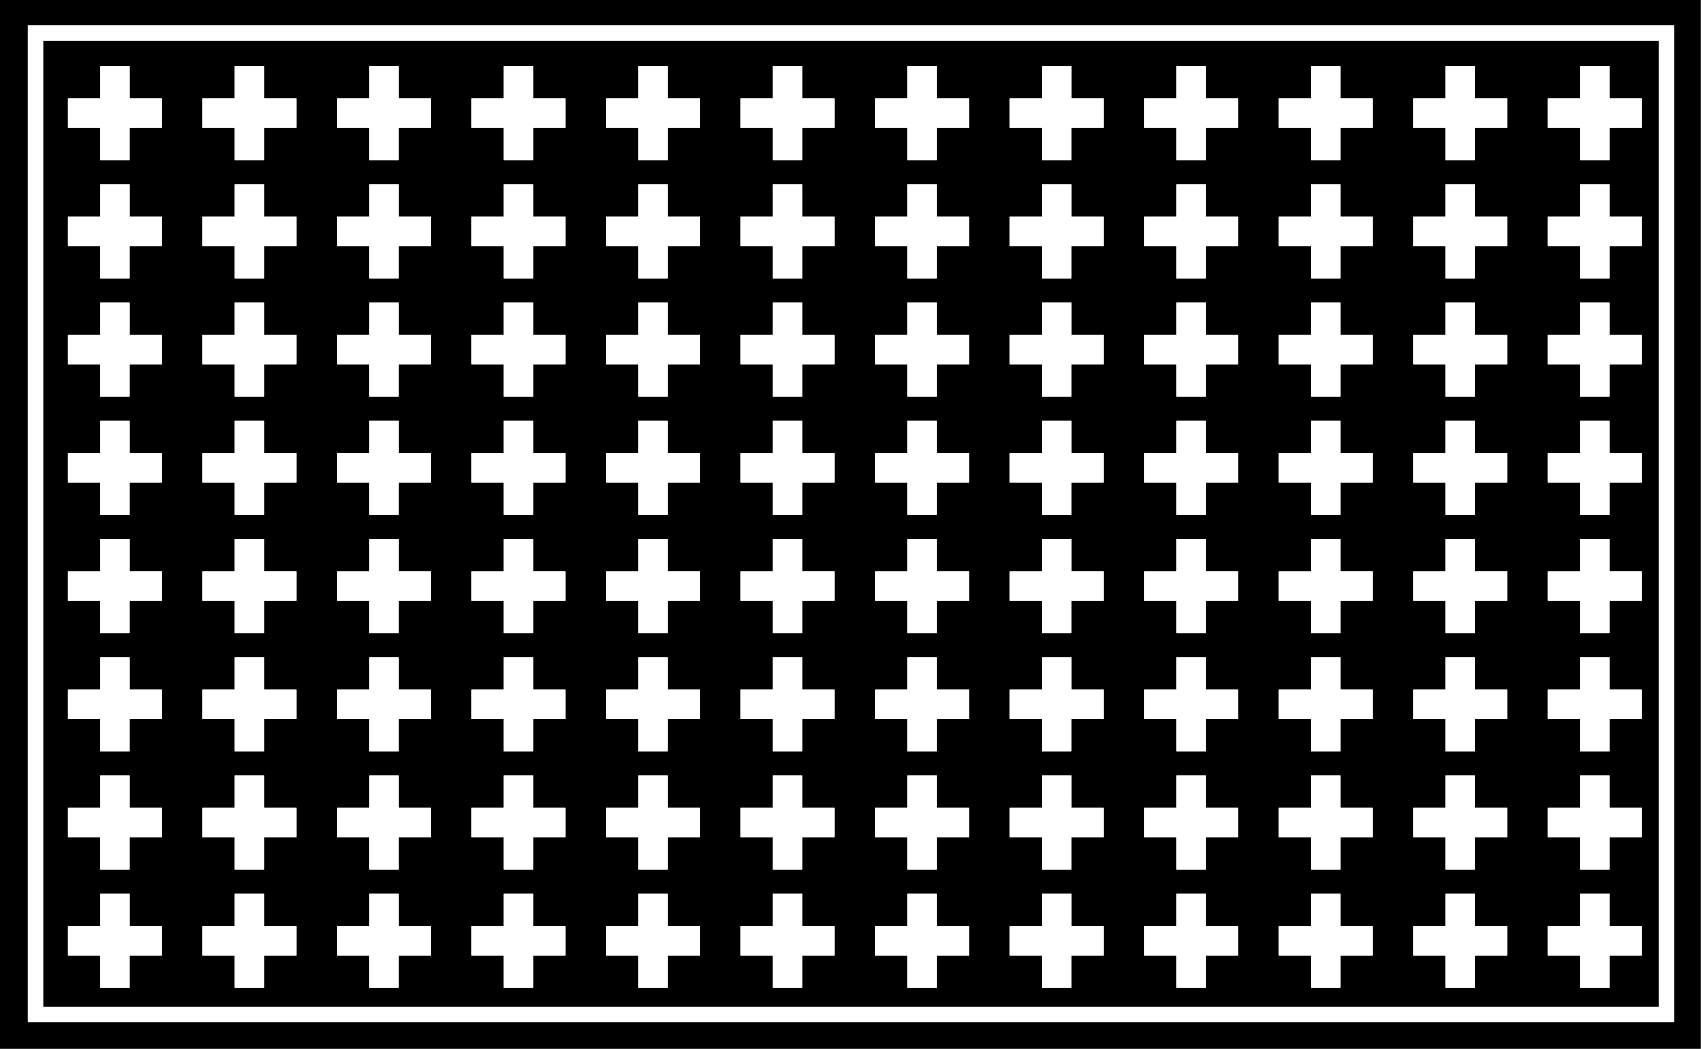 TenStickers. White and Black Cross minimalist carpet. An original but simple black and white crosses vinyl rug to make your house look stunning. High quality product delivered to your house.